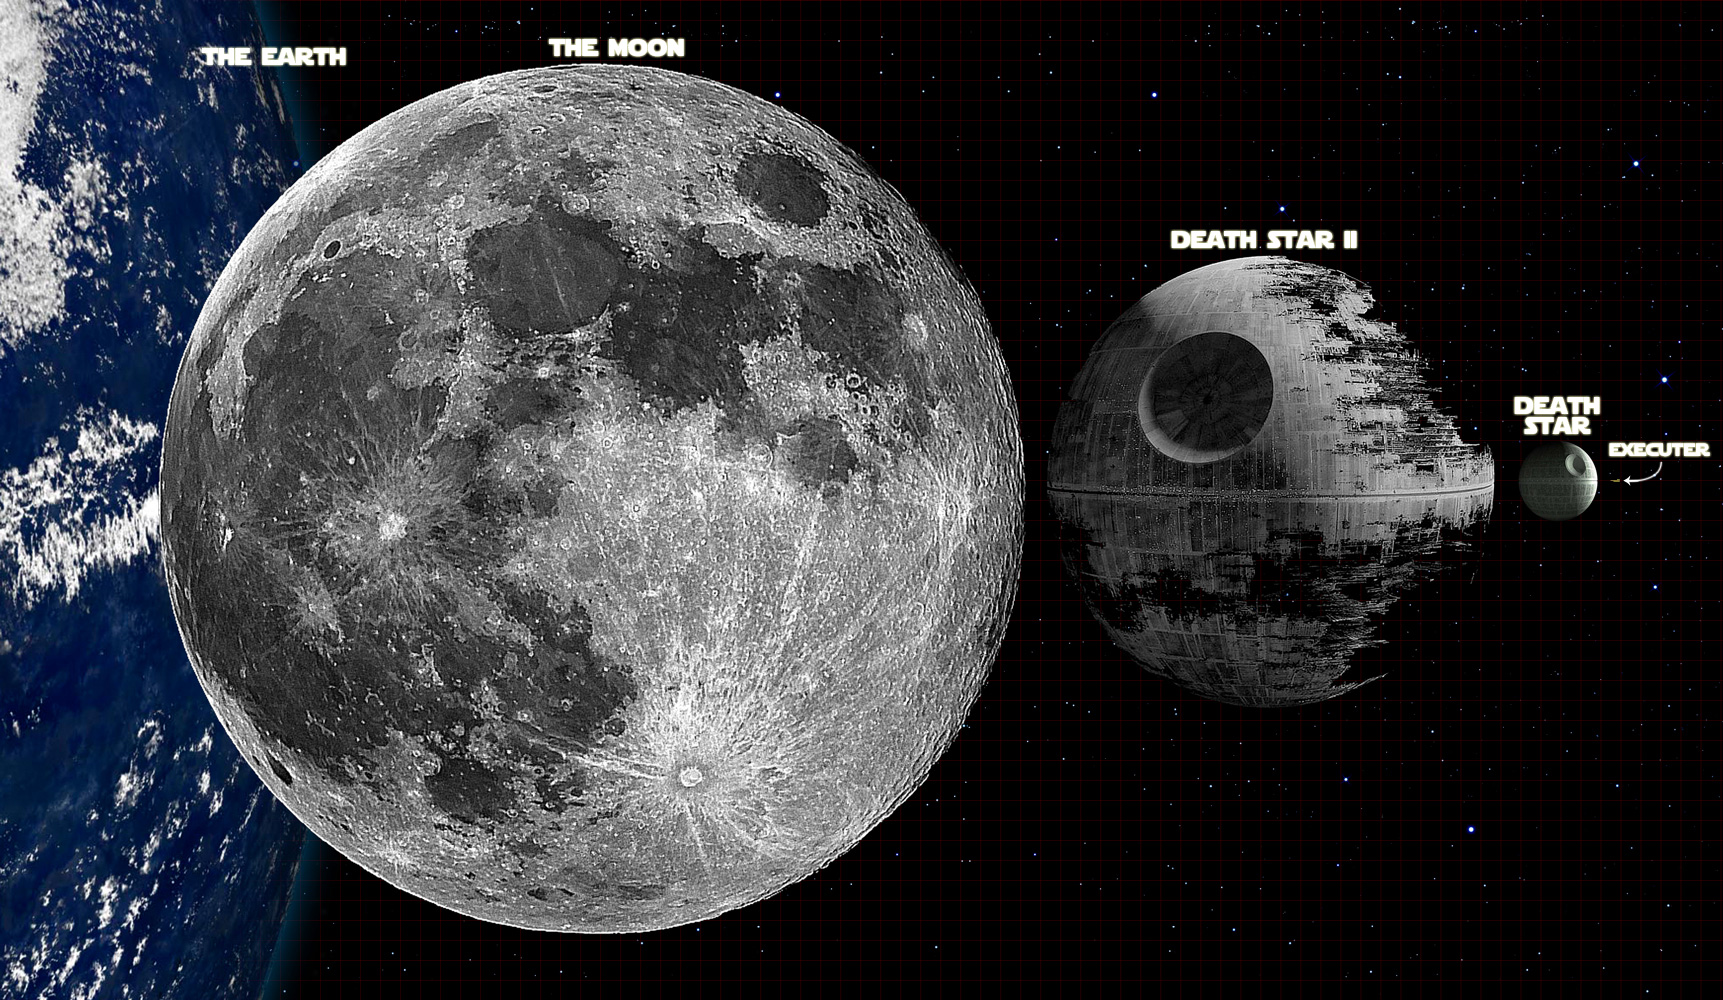 white-house-responds-to-petition-to-build-a-death-star-size-comparison.jpeg